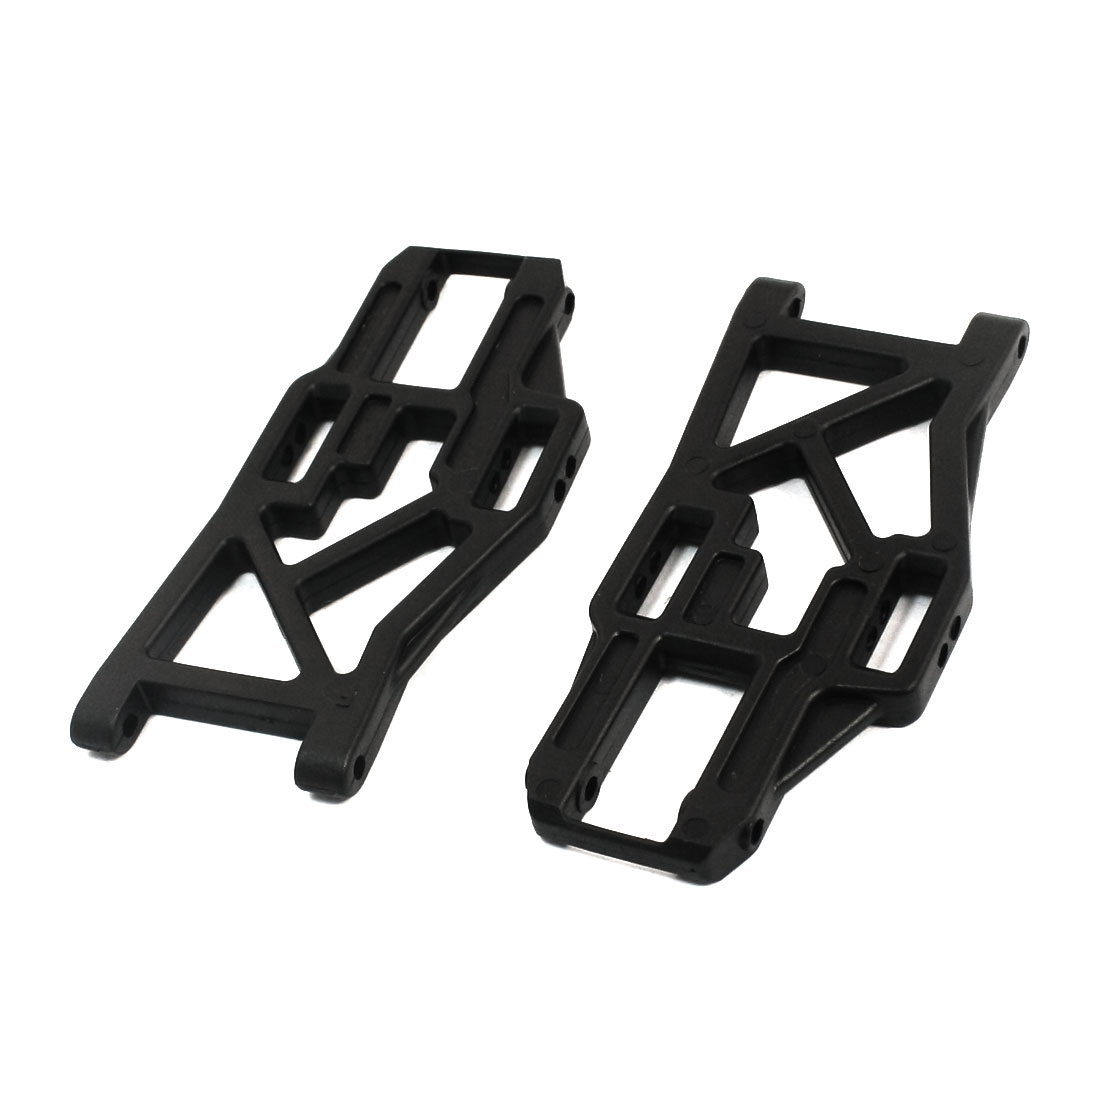 2pcs Plastic 08005 Front Lower Suspension Arm for 94108 RC 1/10 Model Car